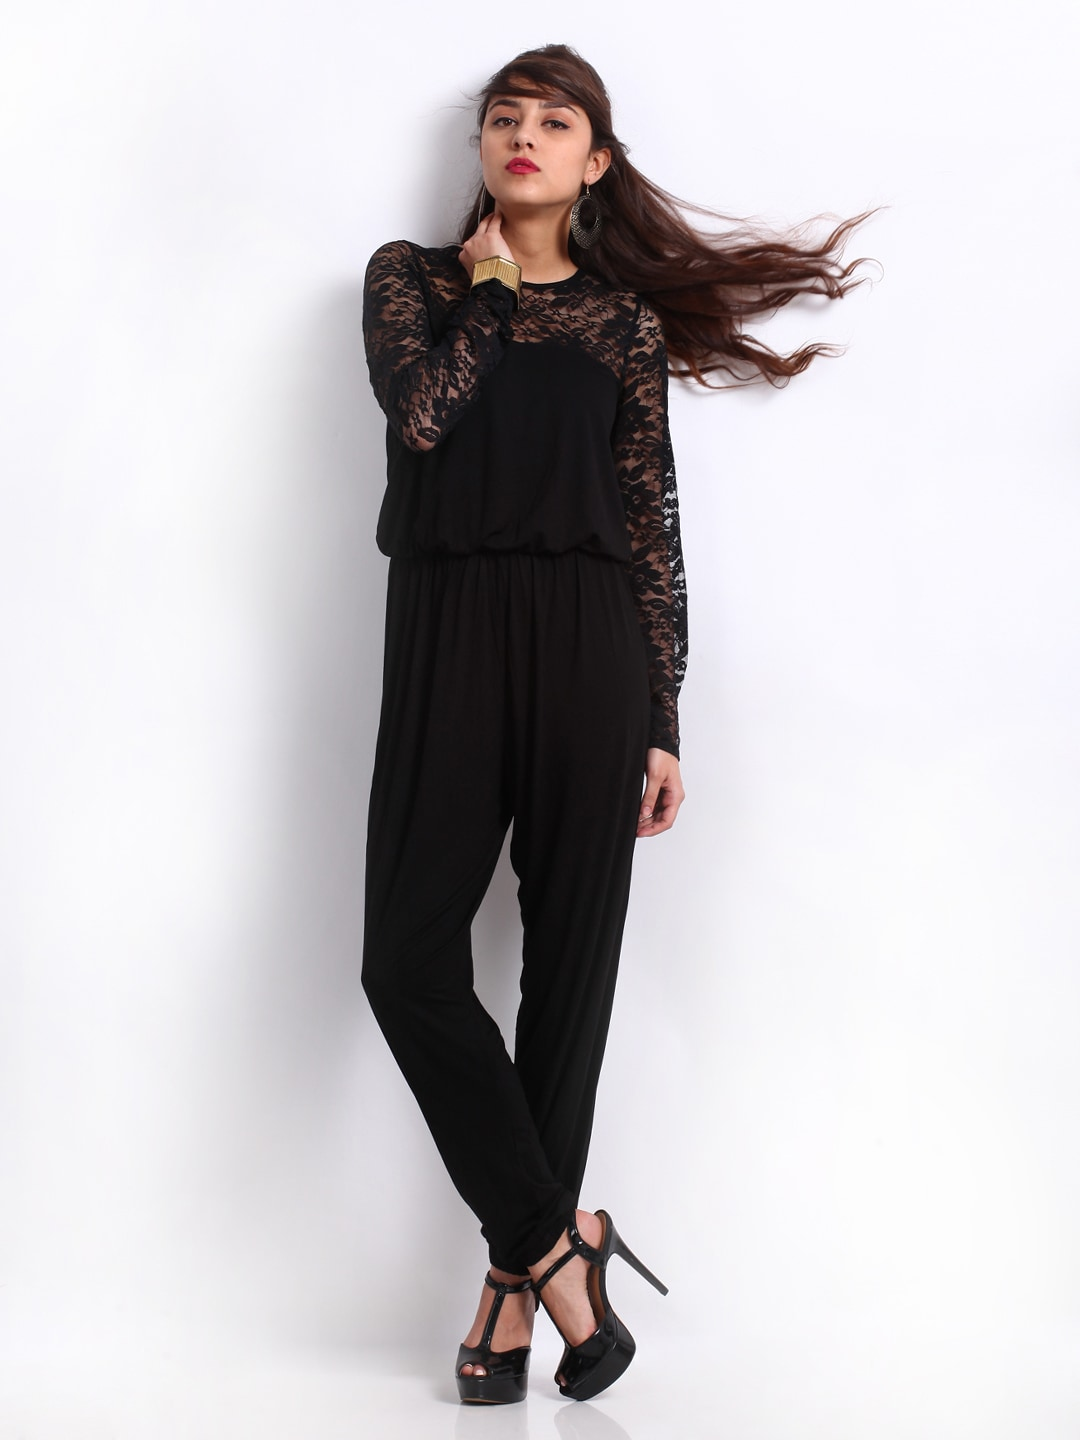 buy vero moda women black lace jumpsuit 421 apparel for women 242088. Black Bedroom Furniture Sets. Home Design Ideas